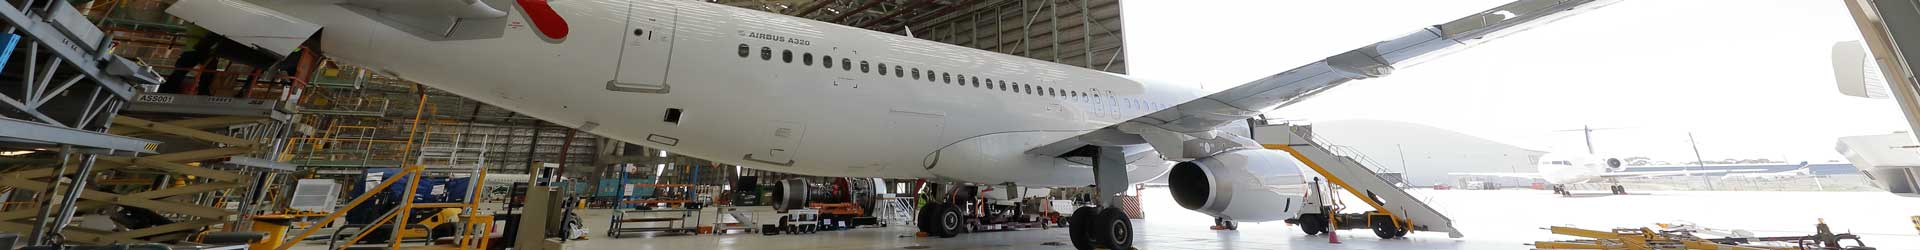 Commercial A320 Airbus inside the Aviat Global Melbourne Jet Base hangar